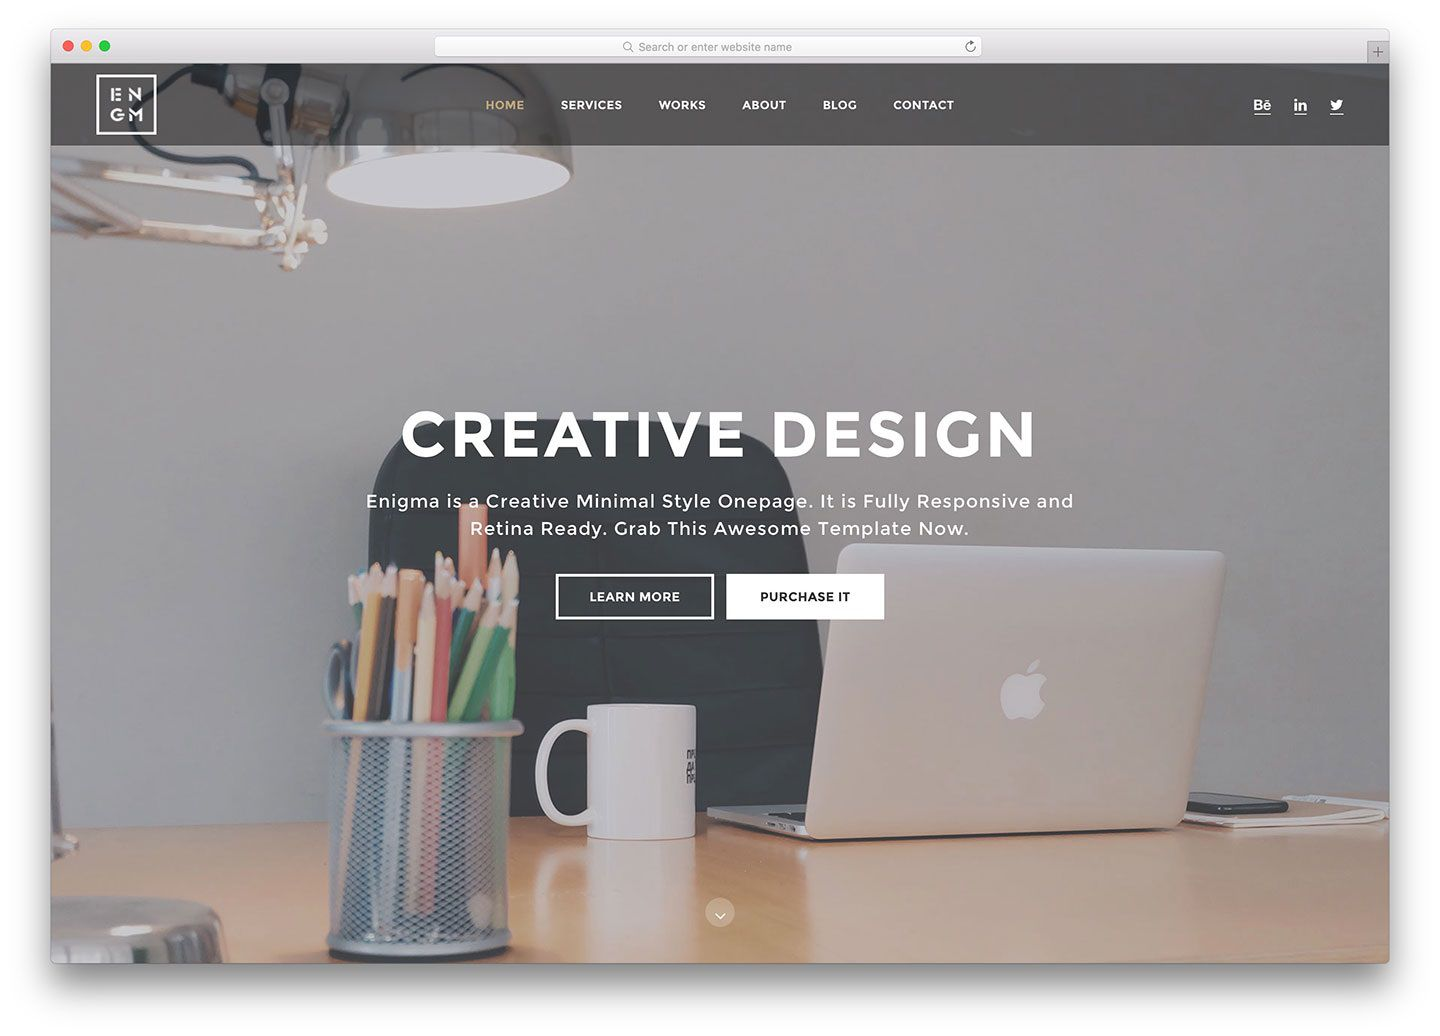 008 Staggering Website Template Html Code Free Download Sample Full